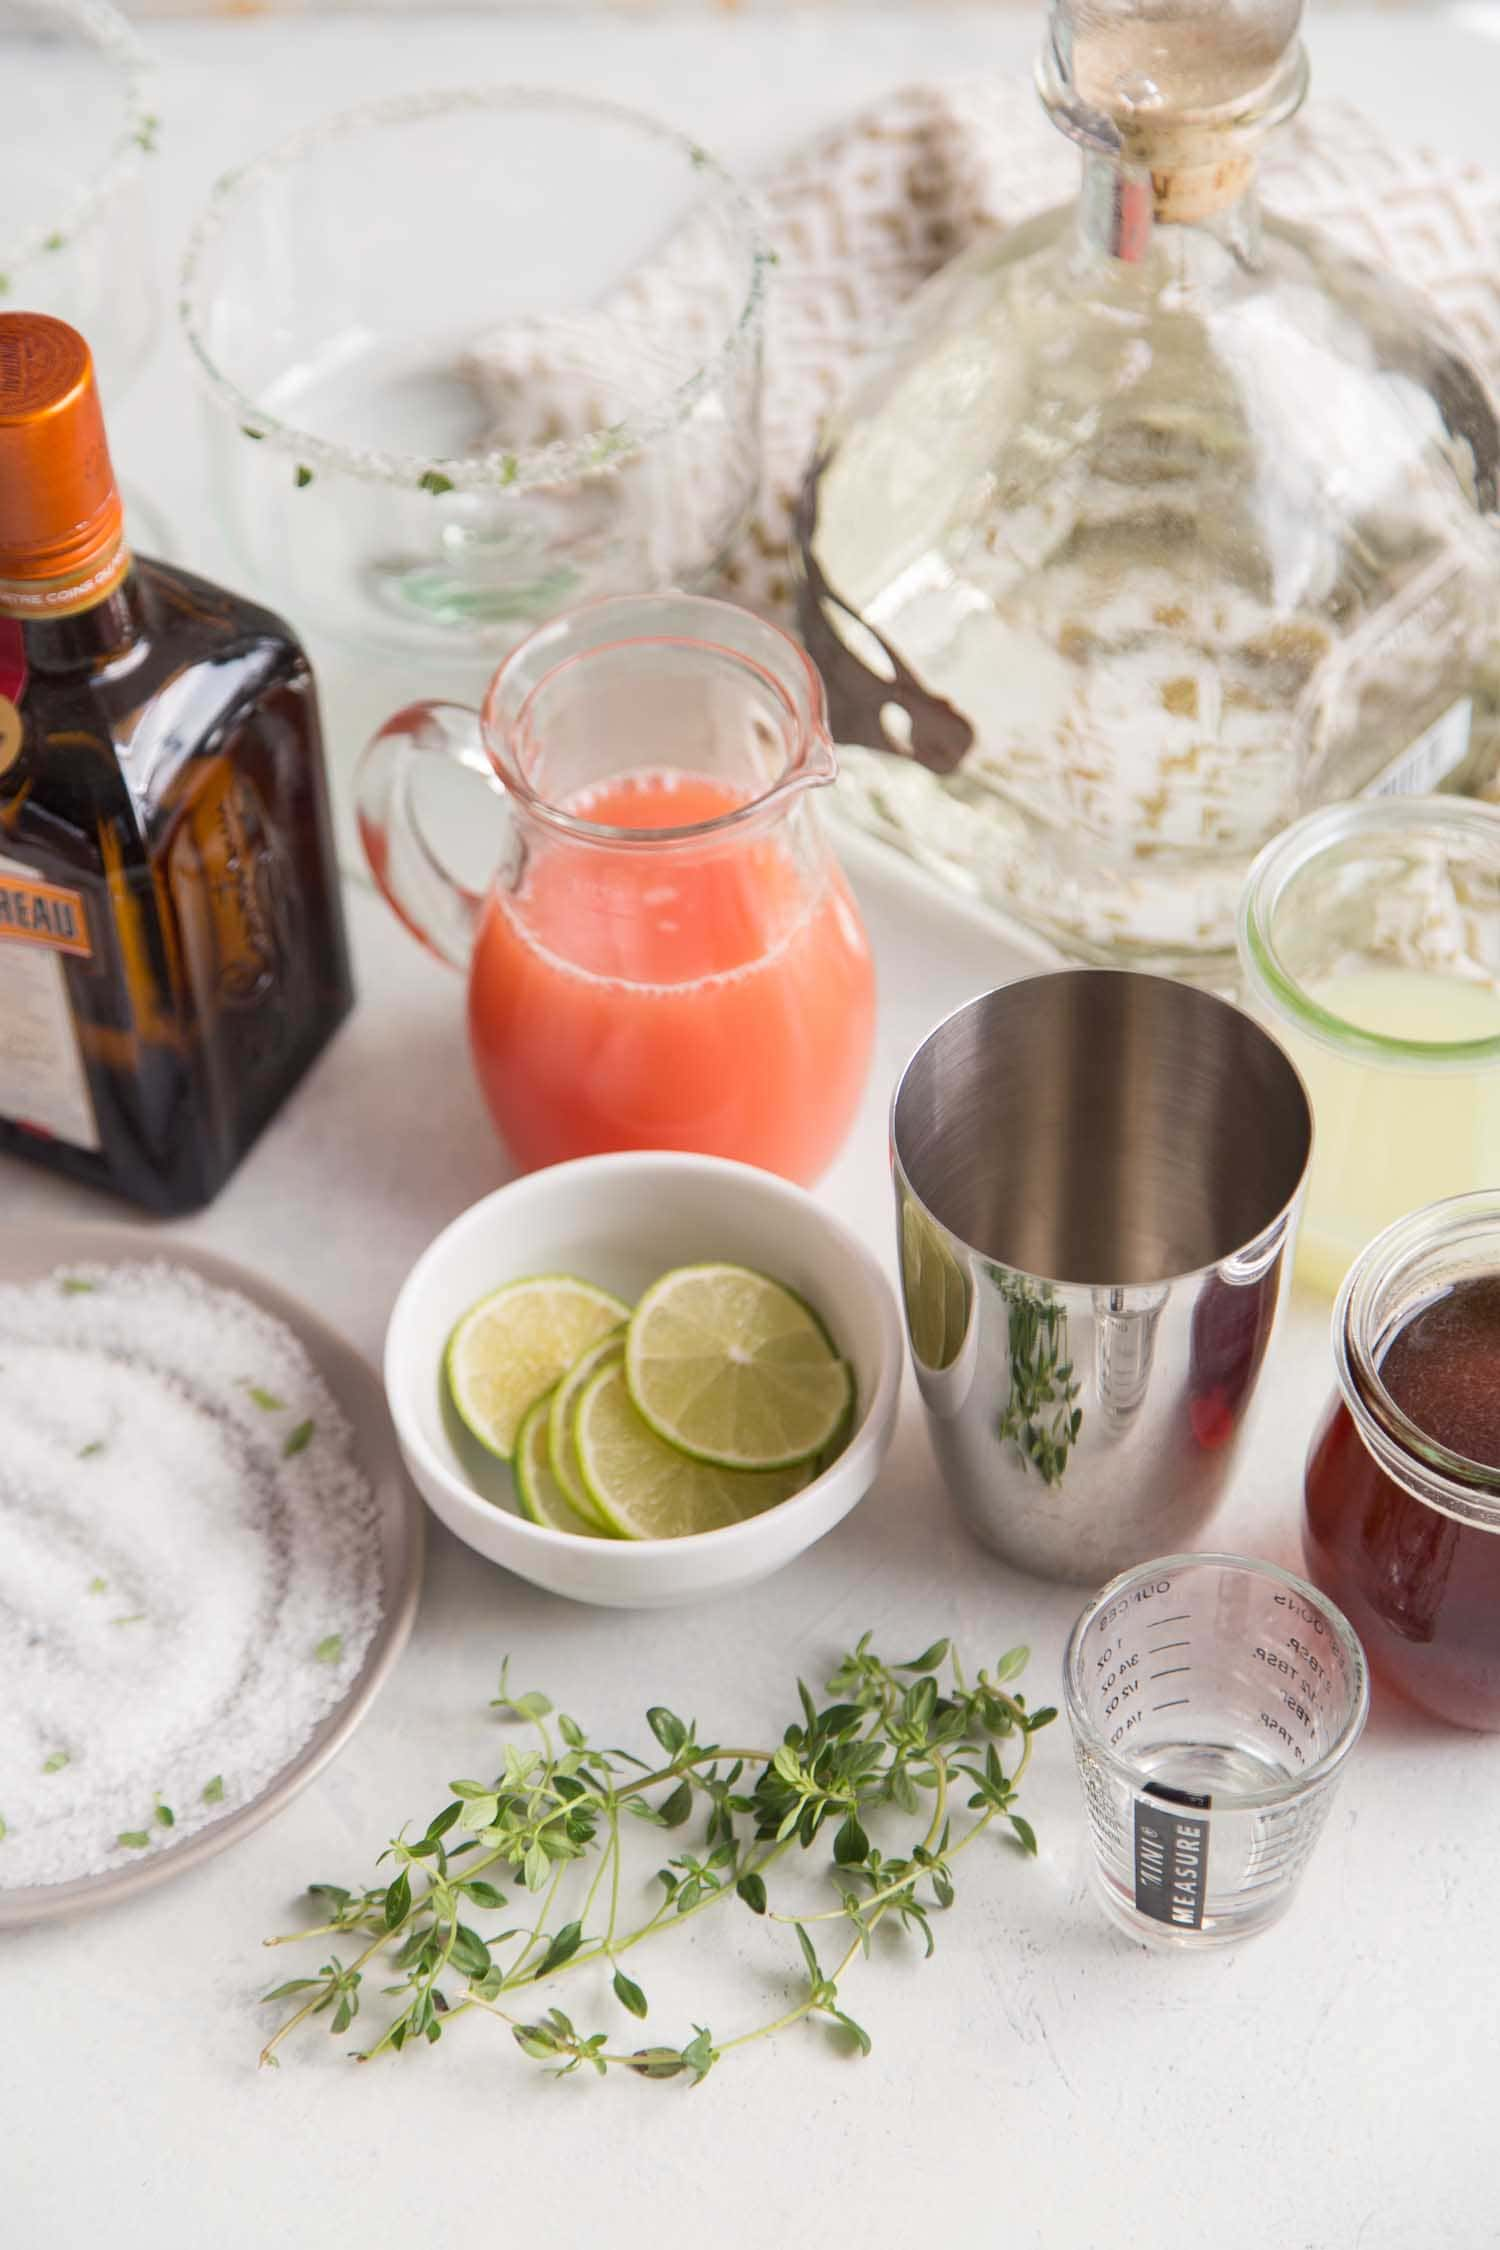 Honey Thyme Margarita Ingredients